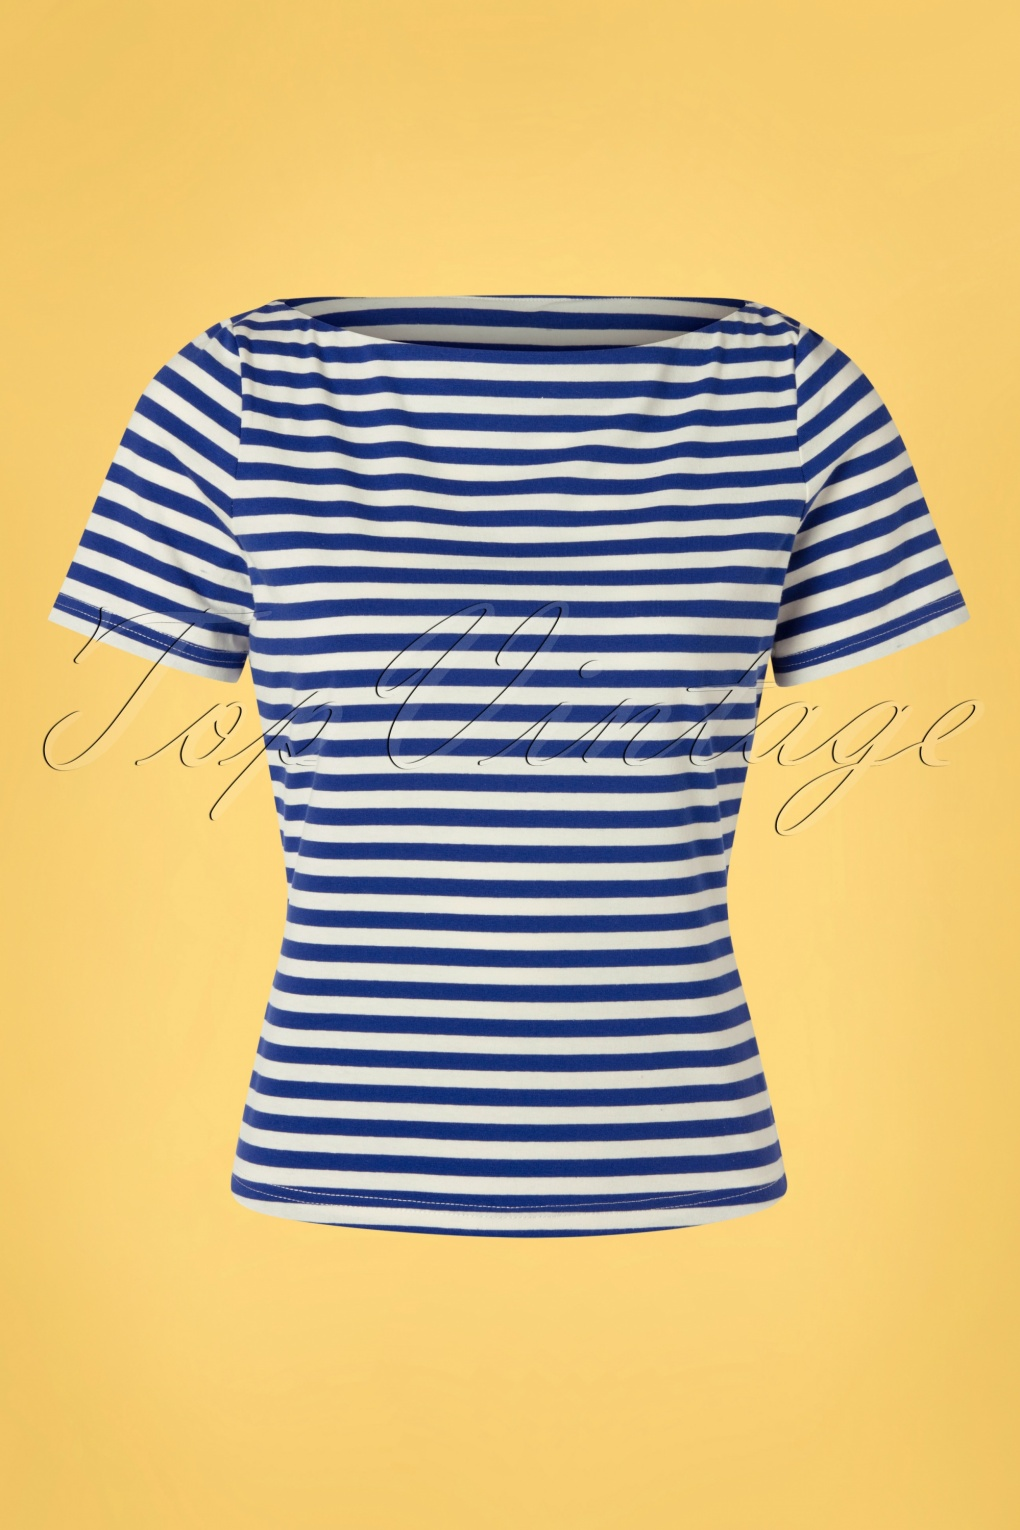 1960s Style Dresses, Clothing, Shoes UK 60s Sally Striped Top in Blue and White £17.32 AT vintagedancer.com